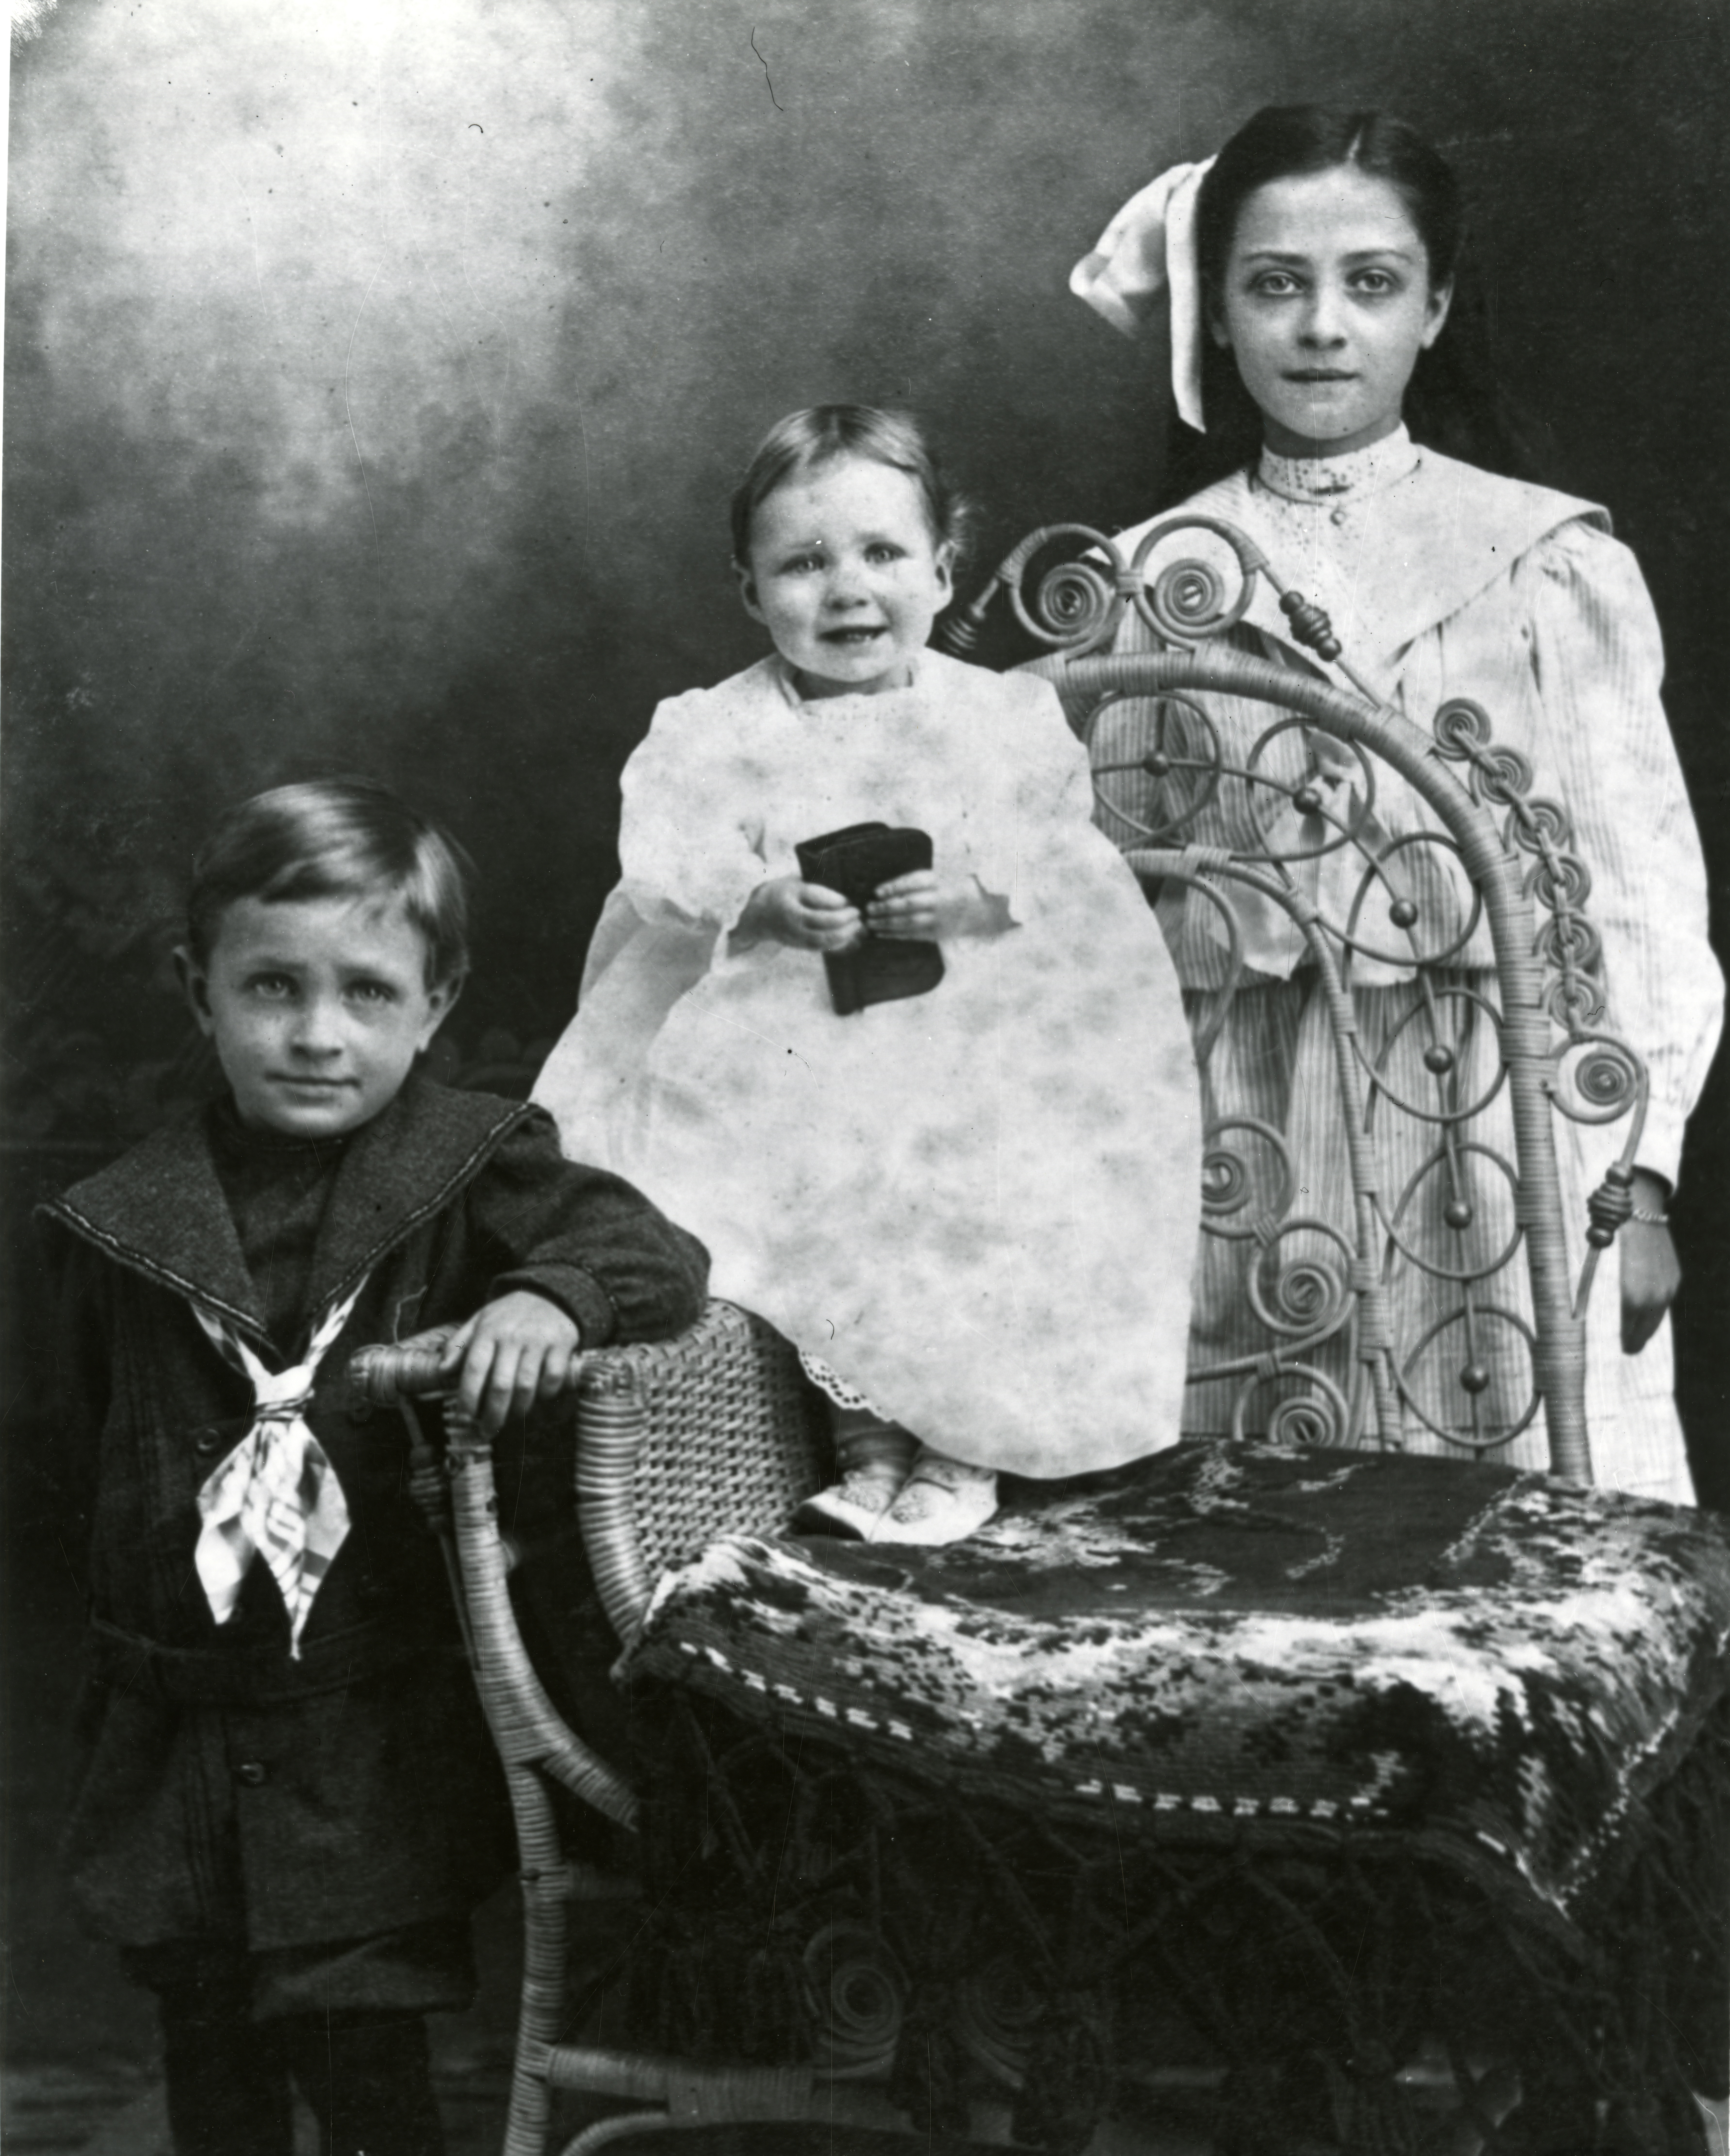 Sumner, Corinna, and Laura Lowe, circa 1905.